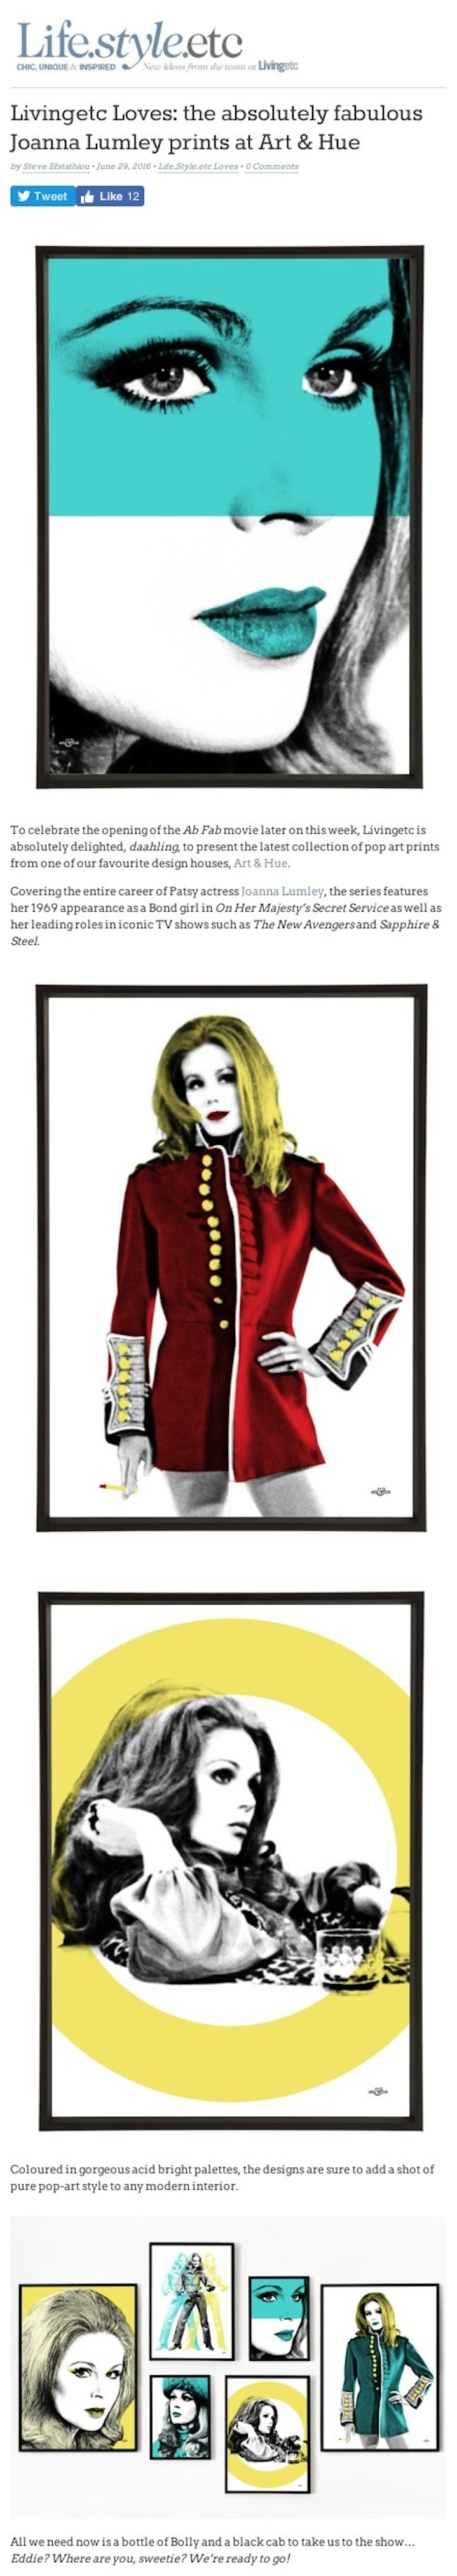 Livingetc Loves: the absolutely fabulous Joanna Lumley prints at Art & Hue | Life.Style.etc